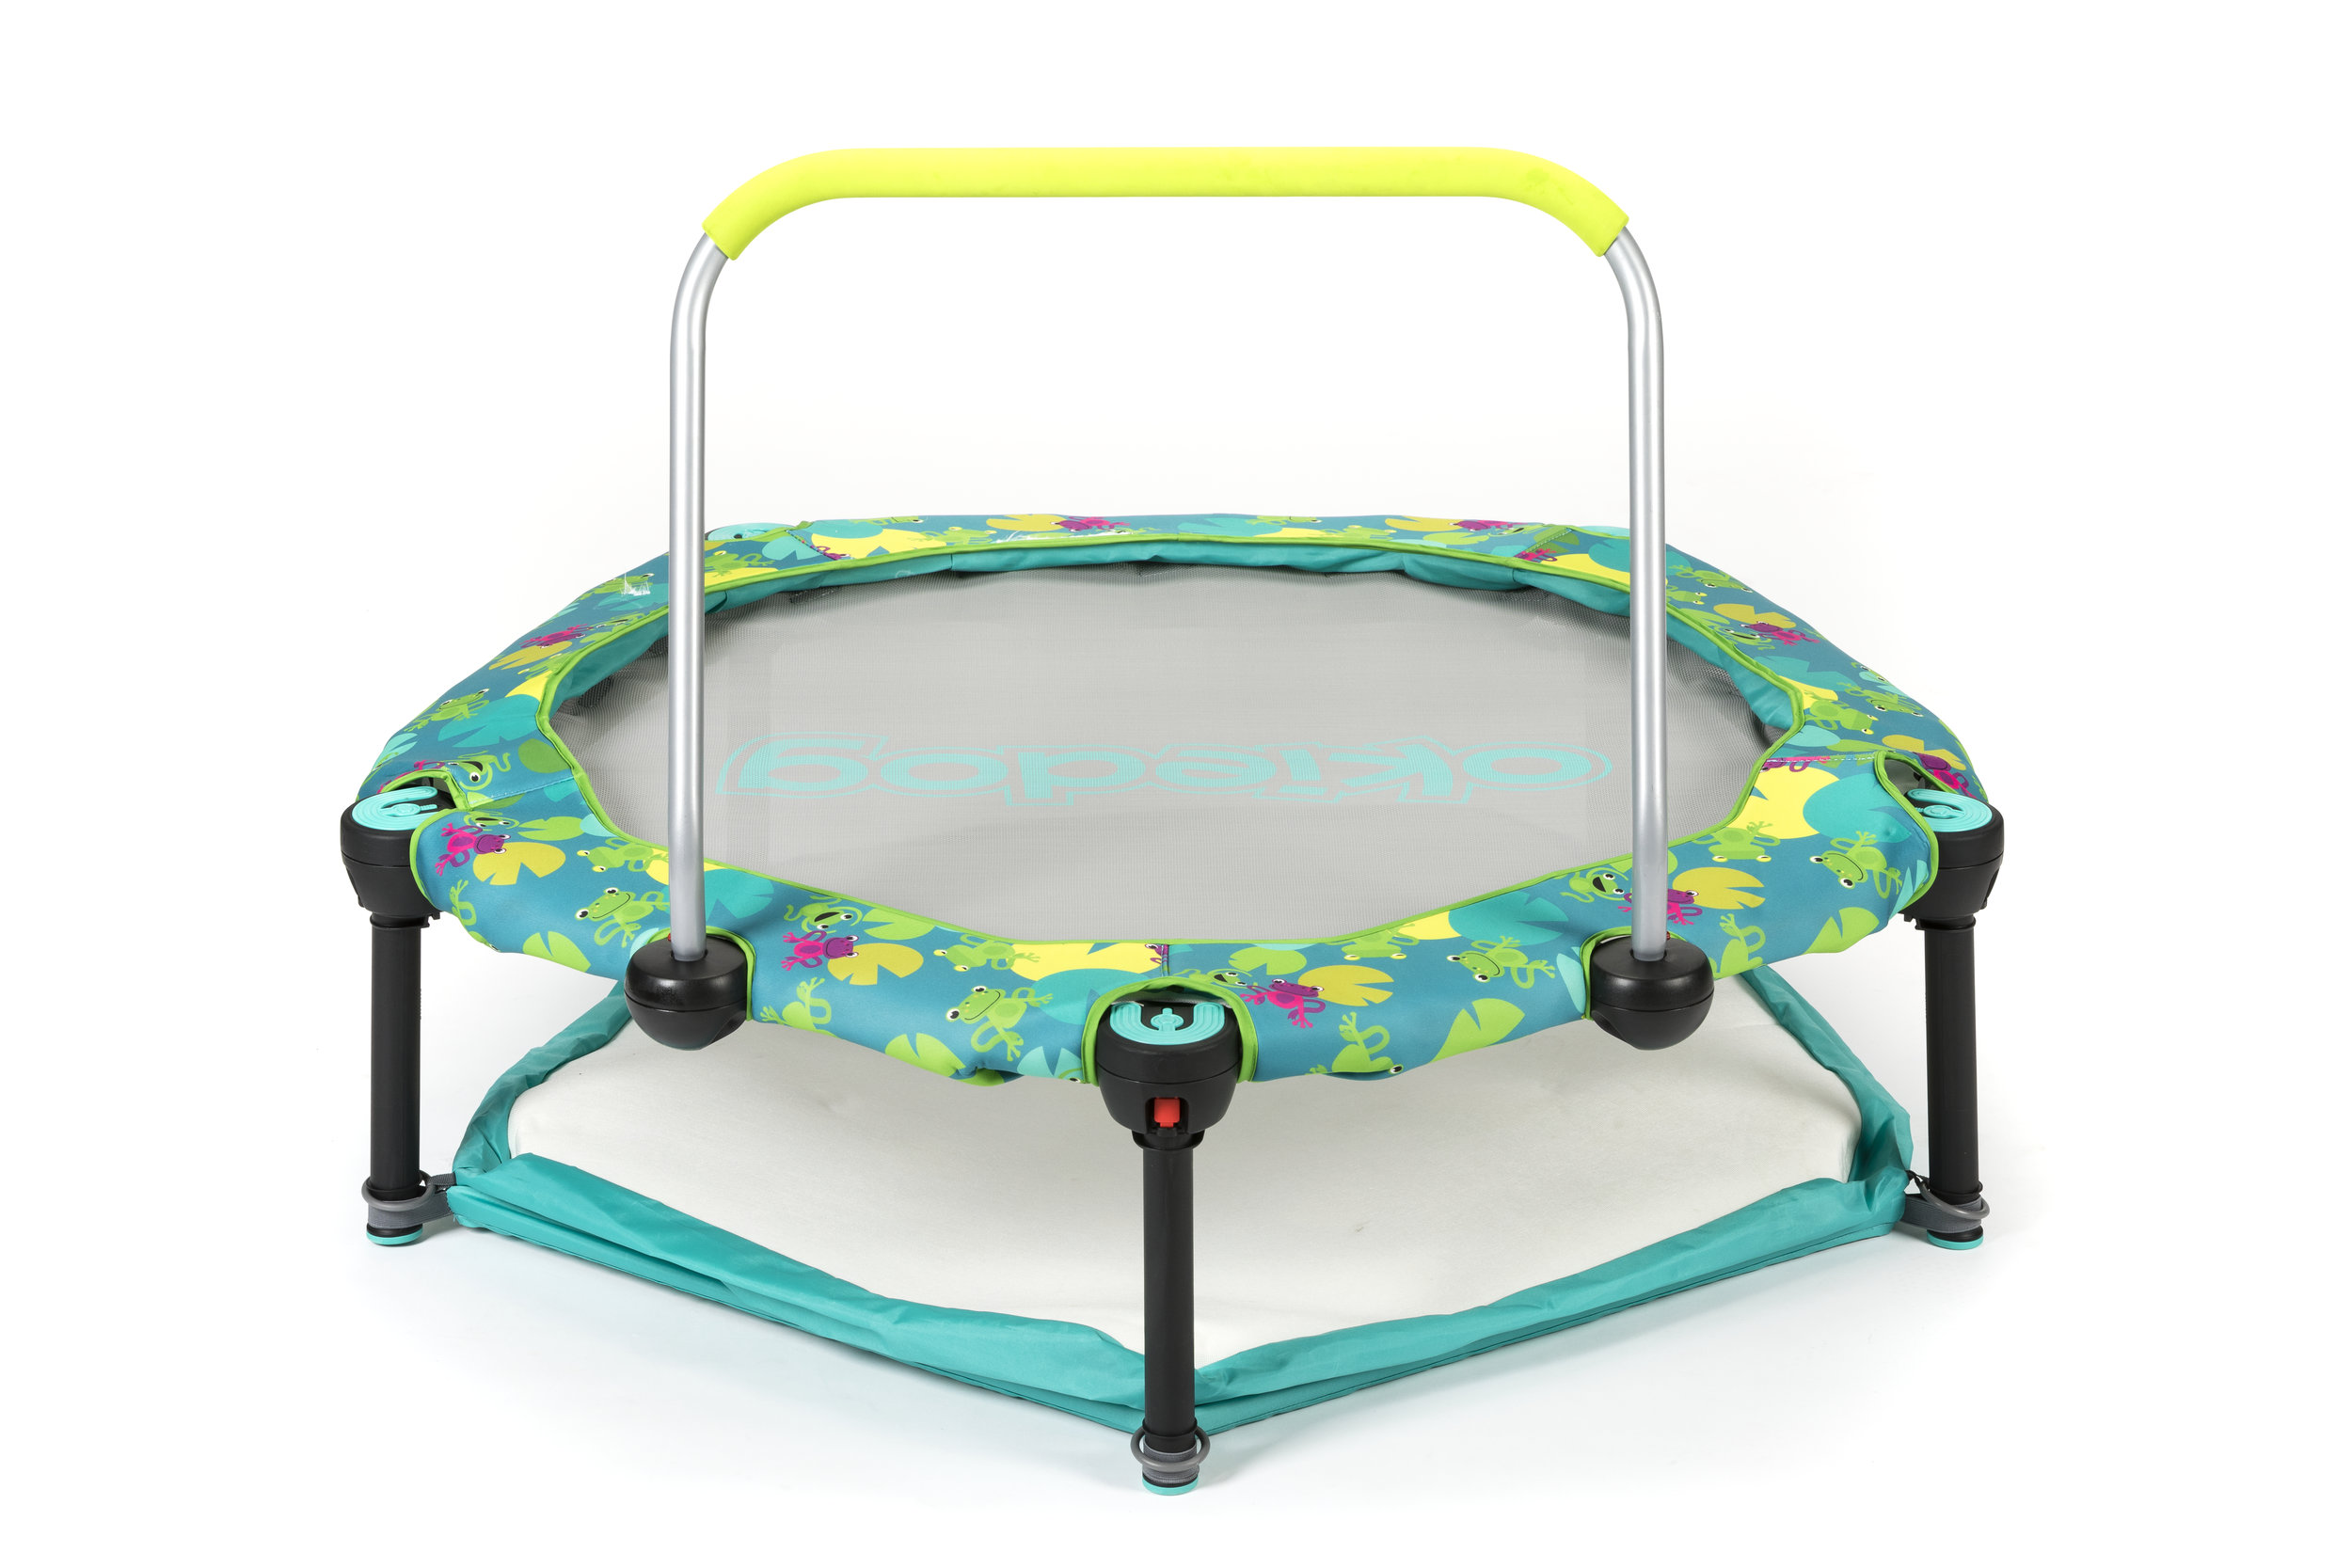 Frogs - 90003 - trampoline with safety bar.jpg